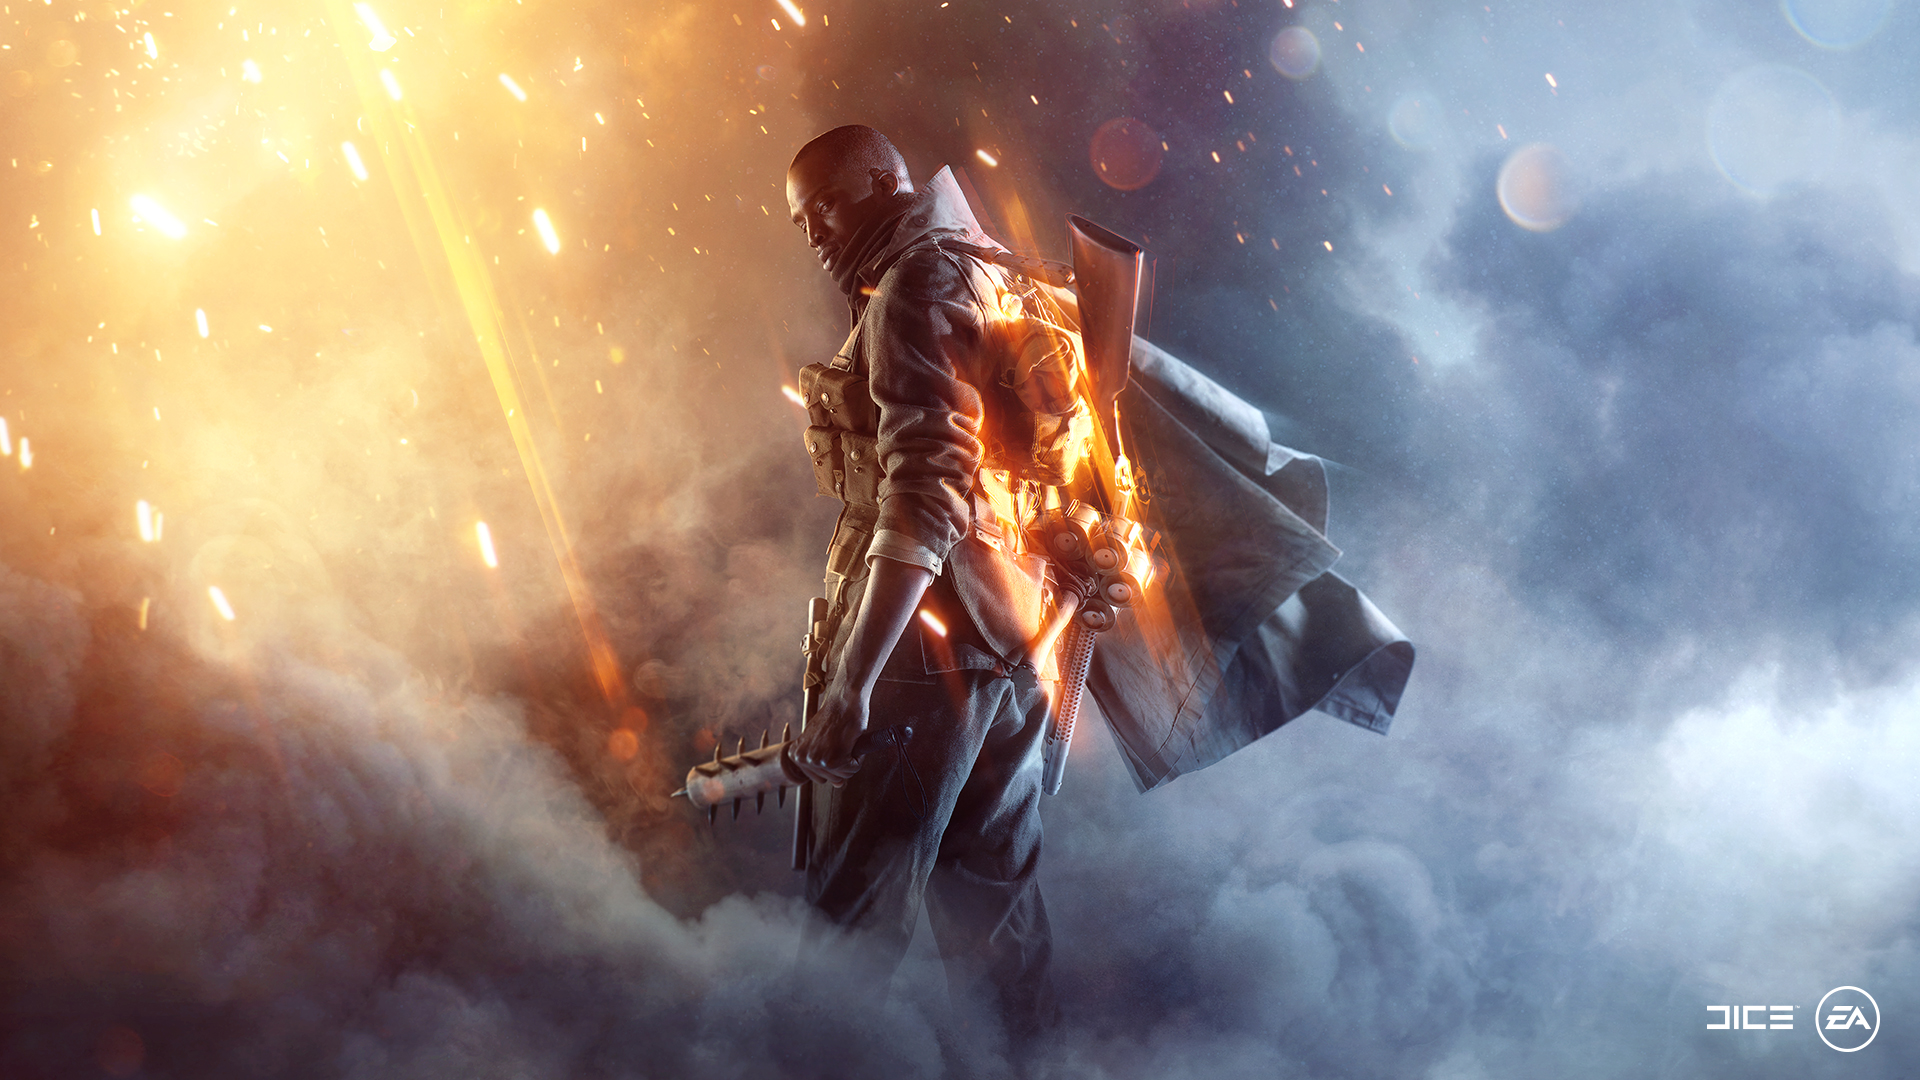 battlefield 1 wallpapers for pc, mobile, and tablets